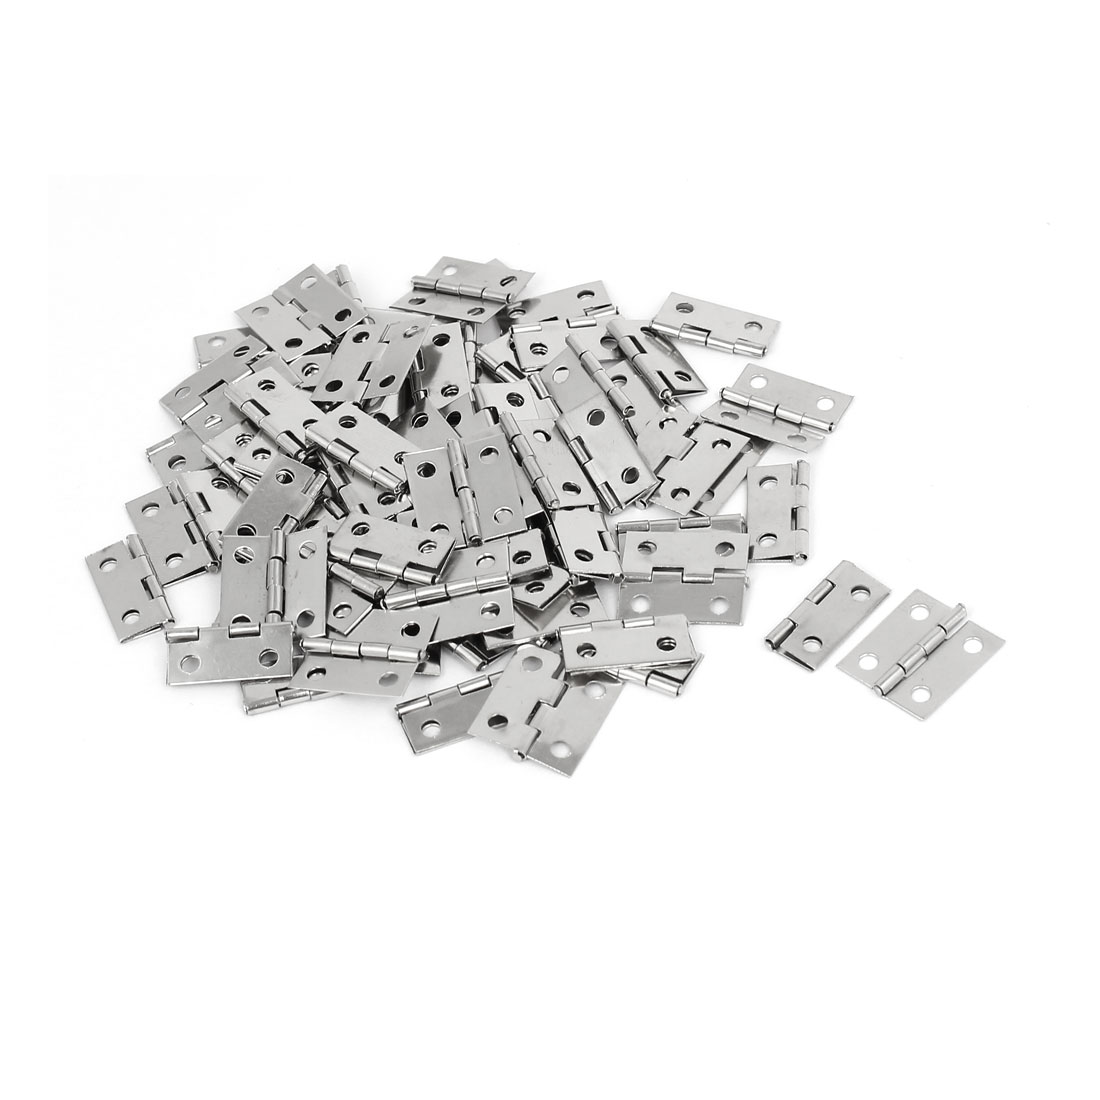 Gift Box Case Foldable Butt Hinges Silver Tone 18mm Length 80PCS